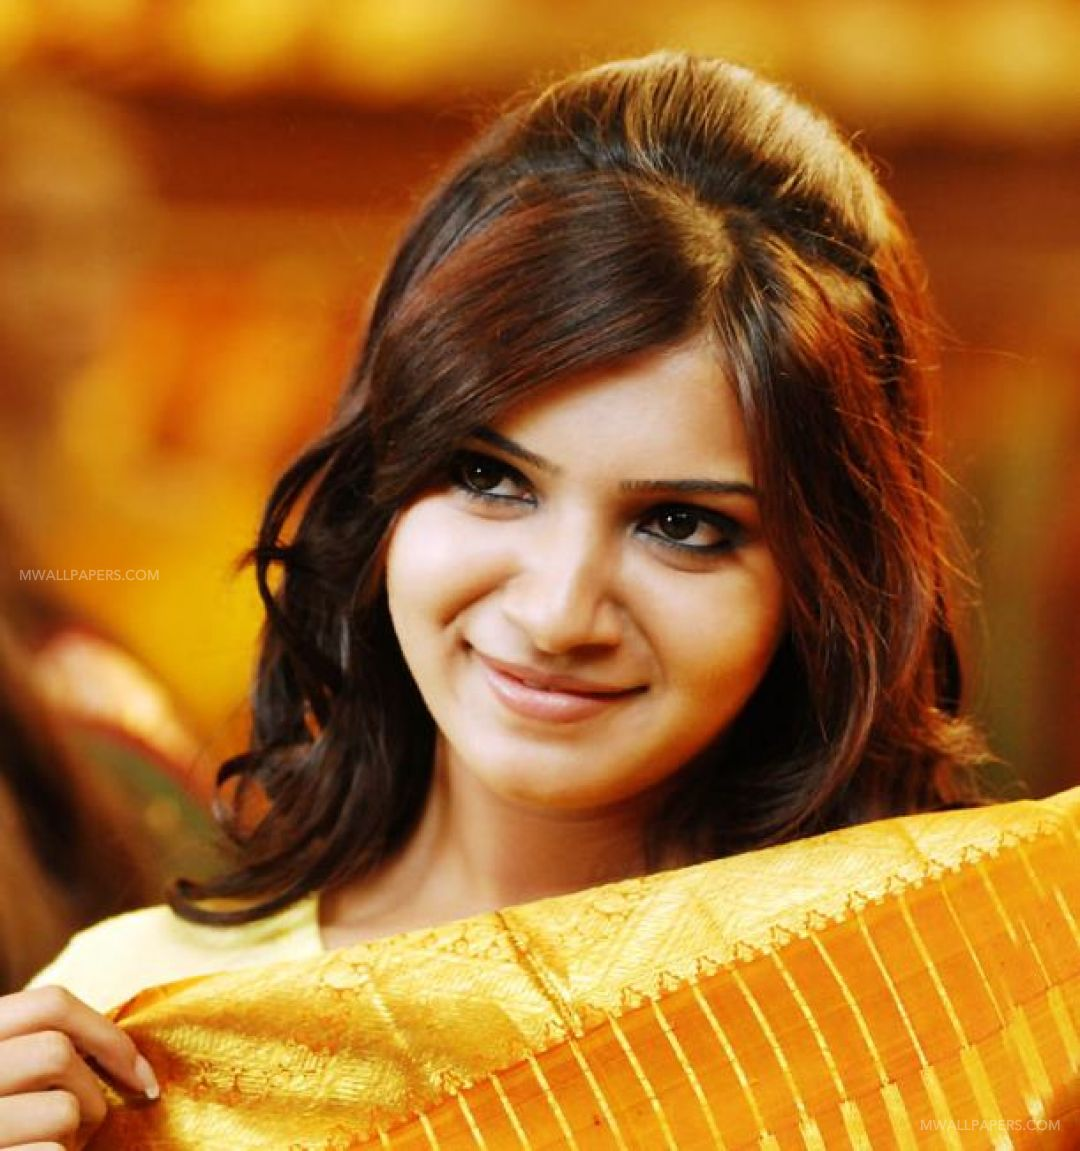 Samantha HD Wallpapers (Desktop Background / Android / iPhone) (1080p, 4k) (38269) - Samantha